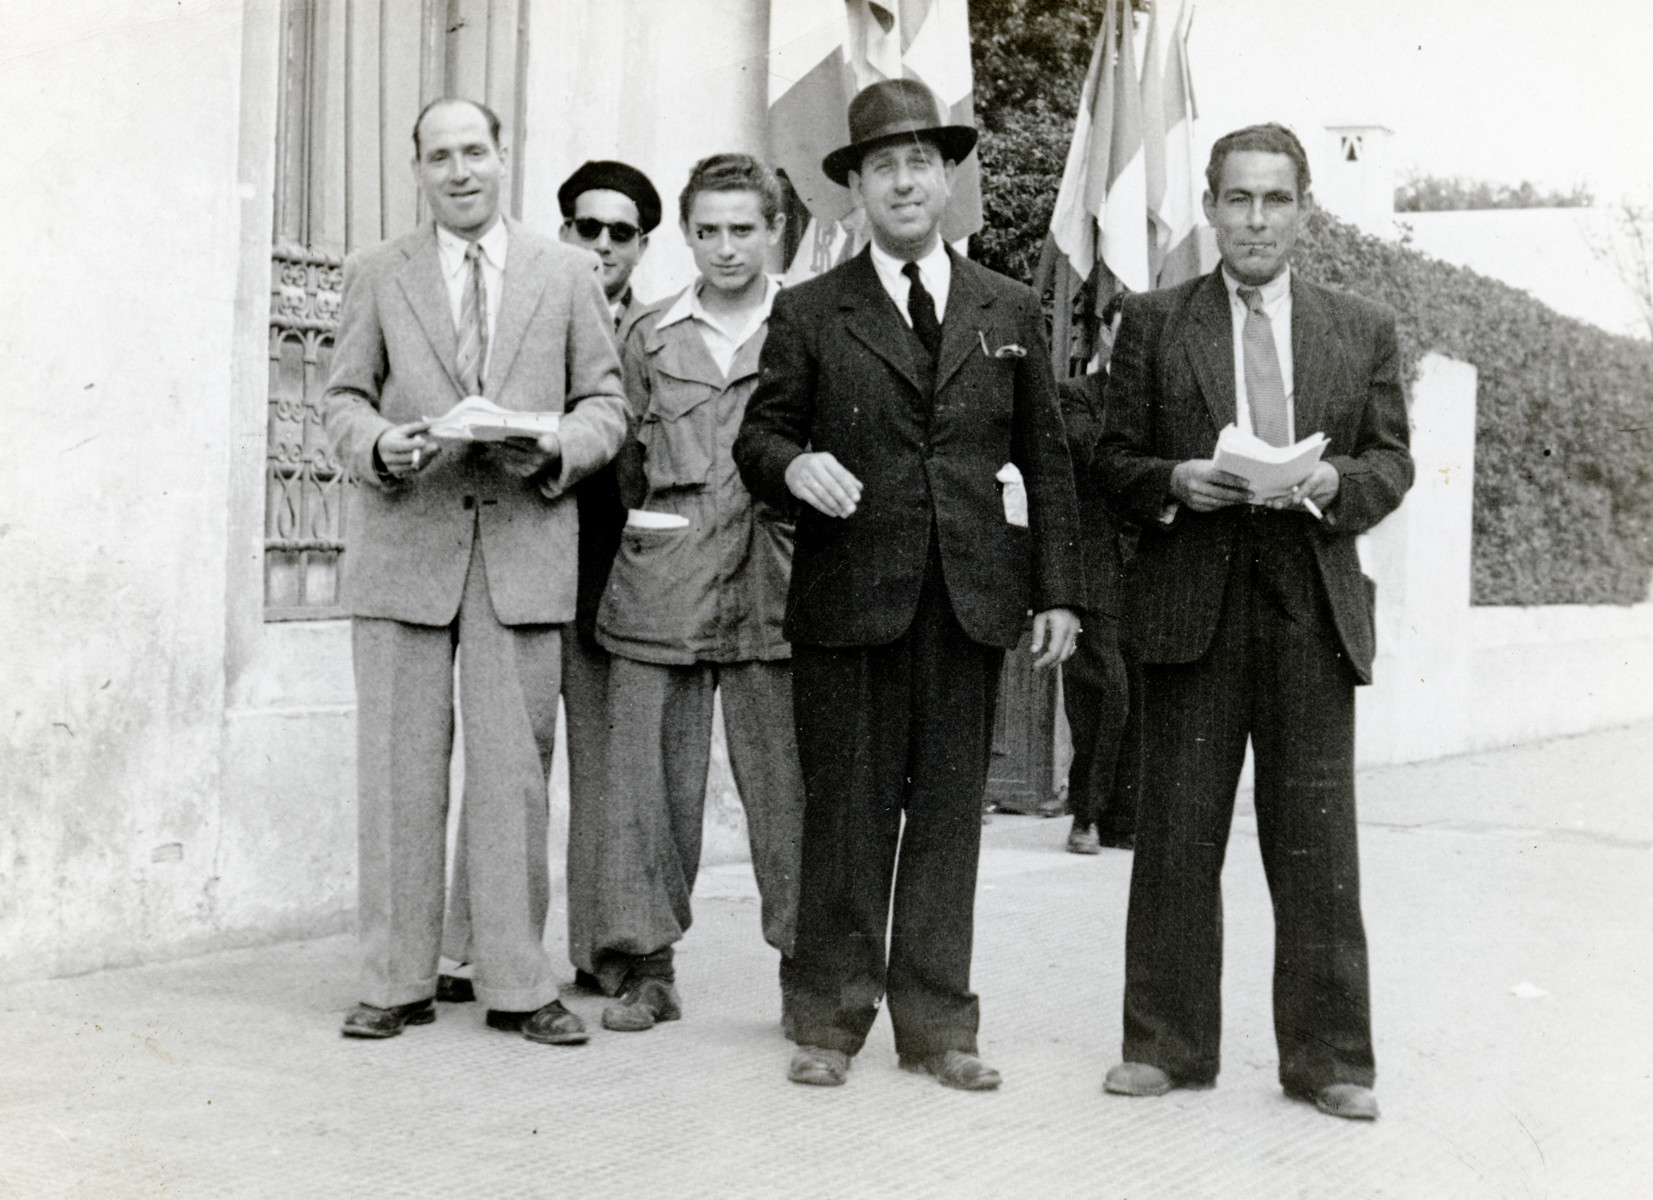 Shimon Sousson (second from the right) poses with four  other men on election day in postwar Morocco.